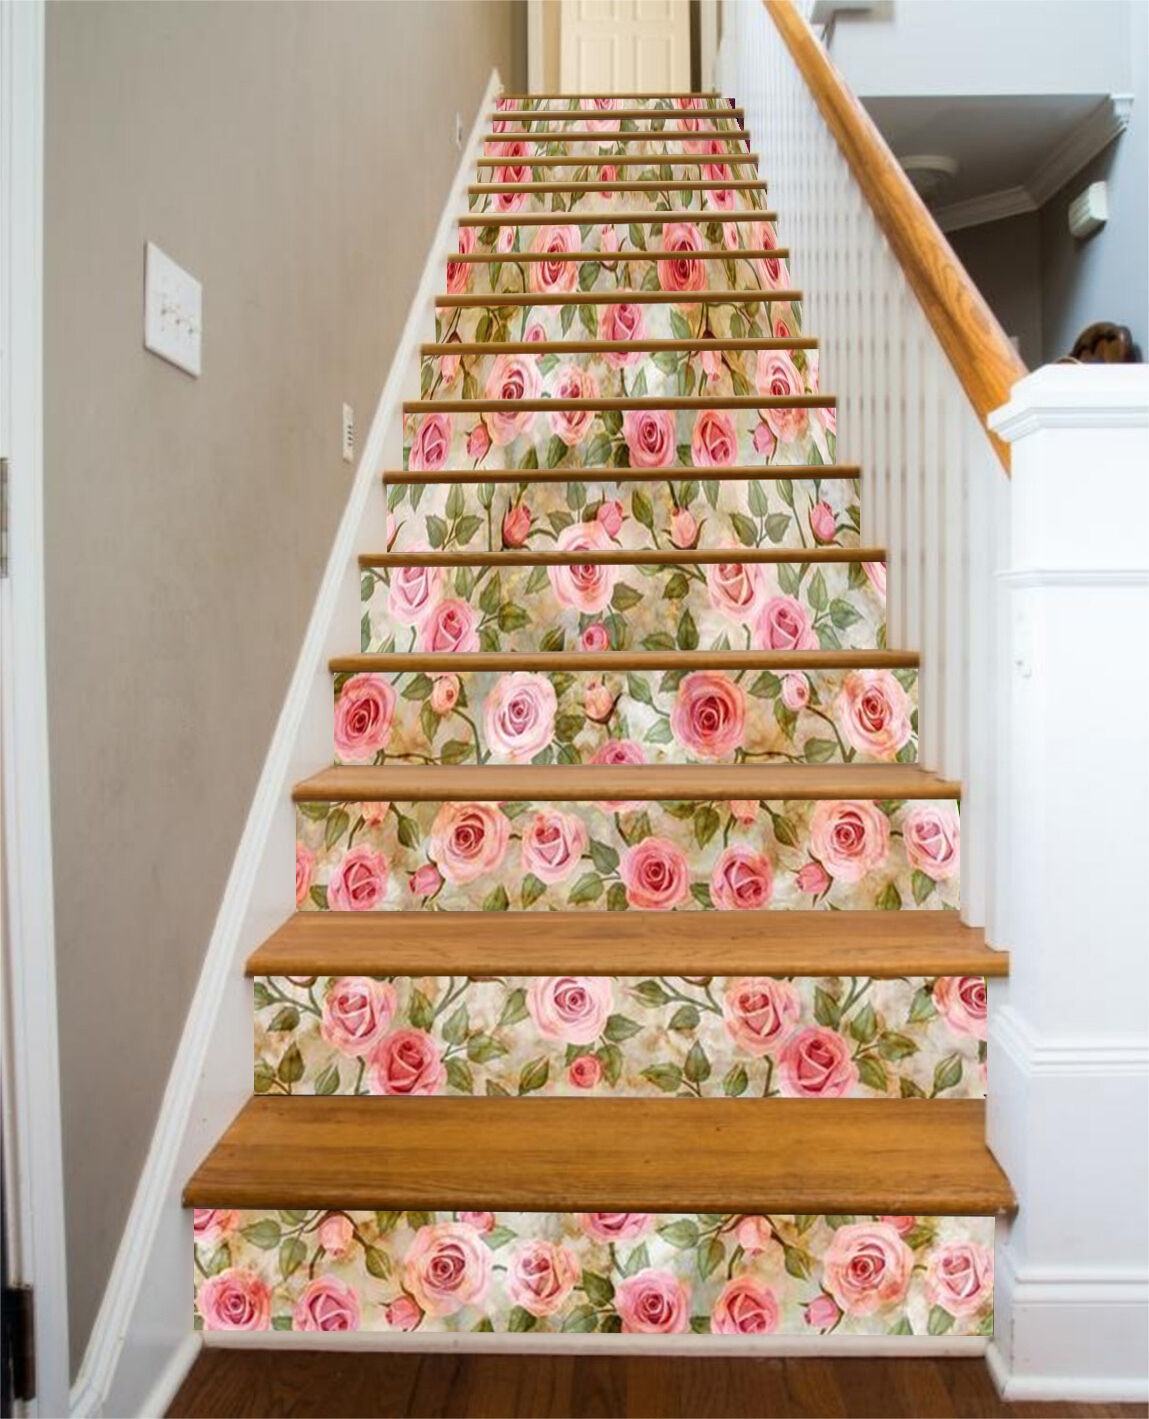 3D Flowers Adorn 72 Stair Risers Decoration Photo Mural Vinyl Decal Wallpaper CA